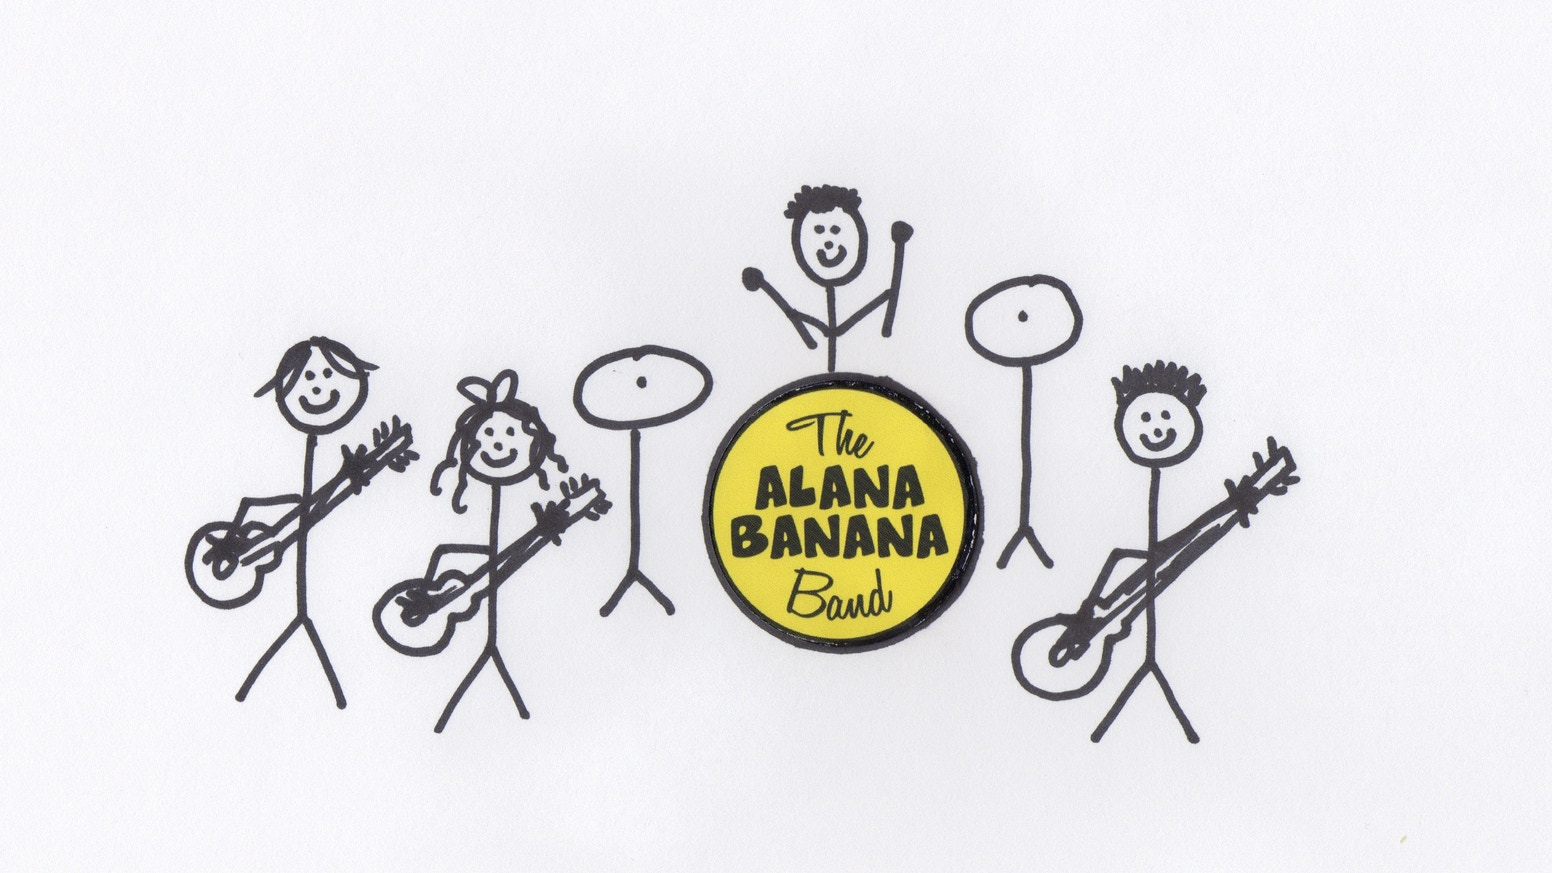 Help The Alana Banana Band finish their album for kids! by